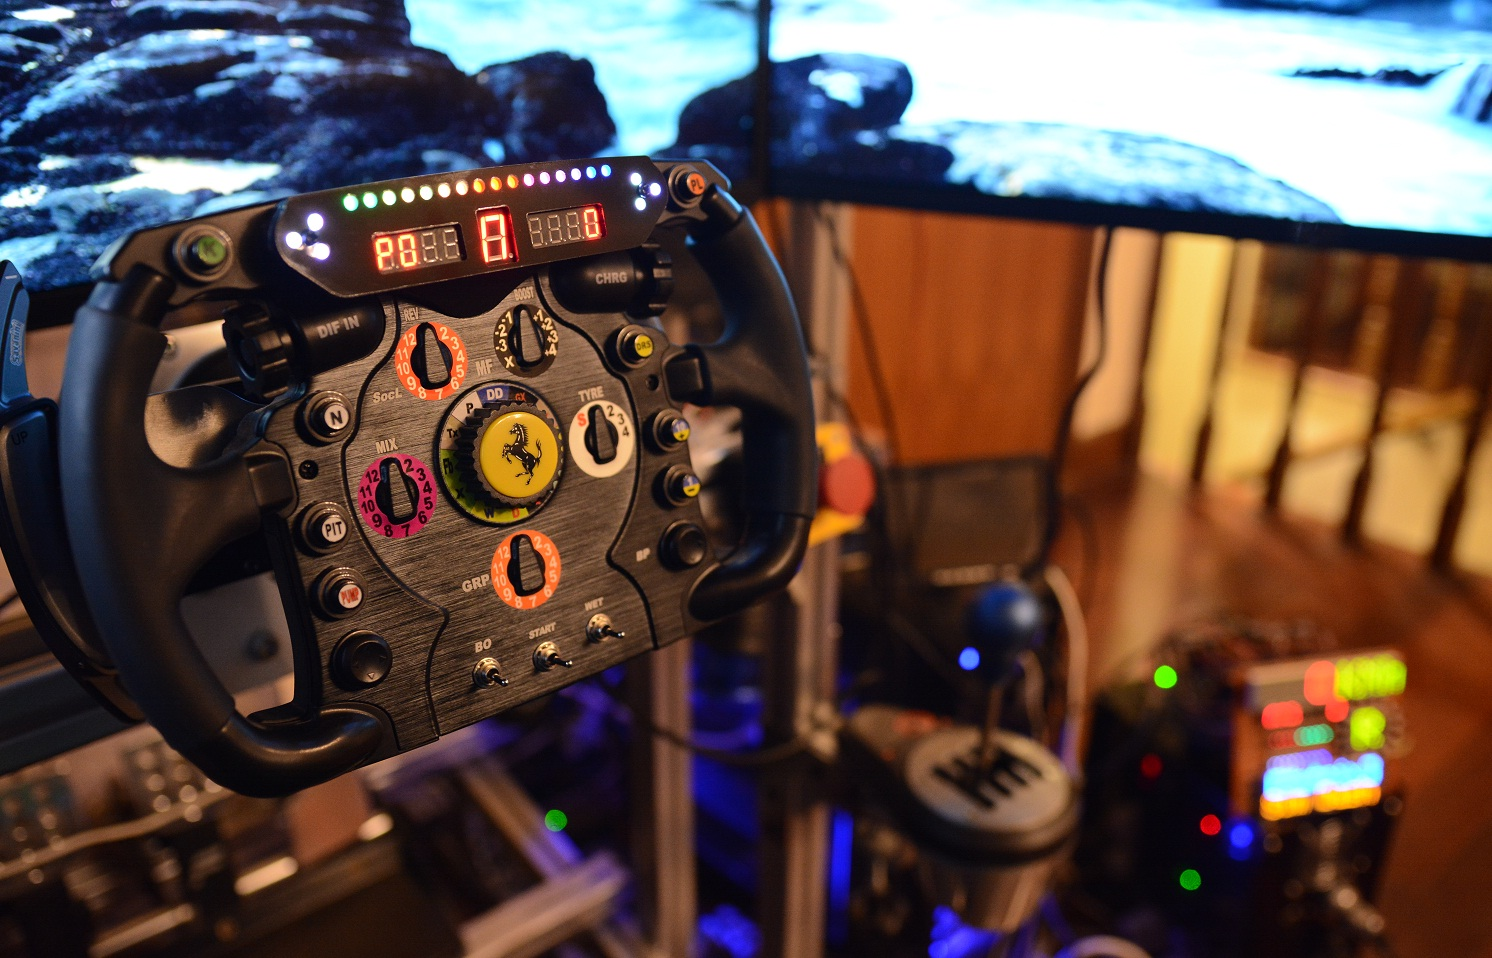 OSW/Accuforce using a F1 Thrustmaster wheel